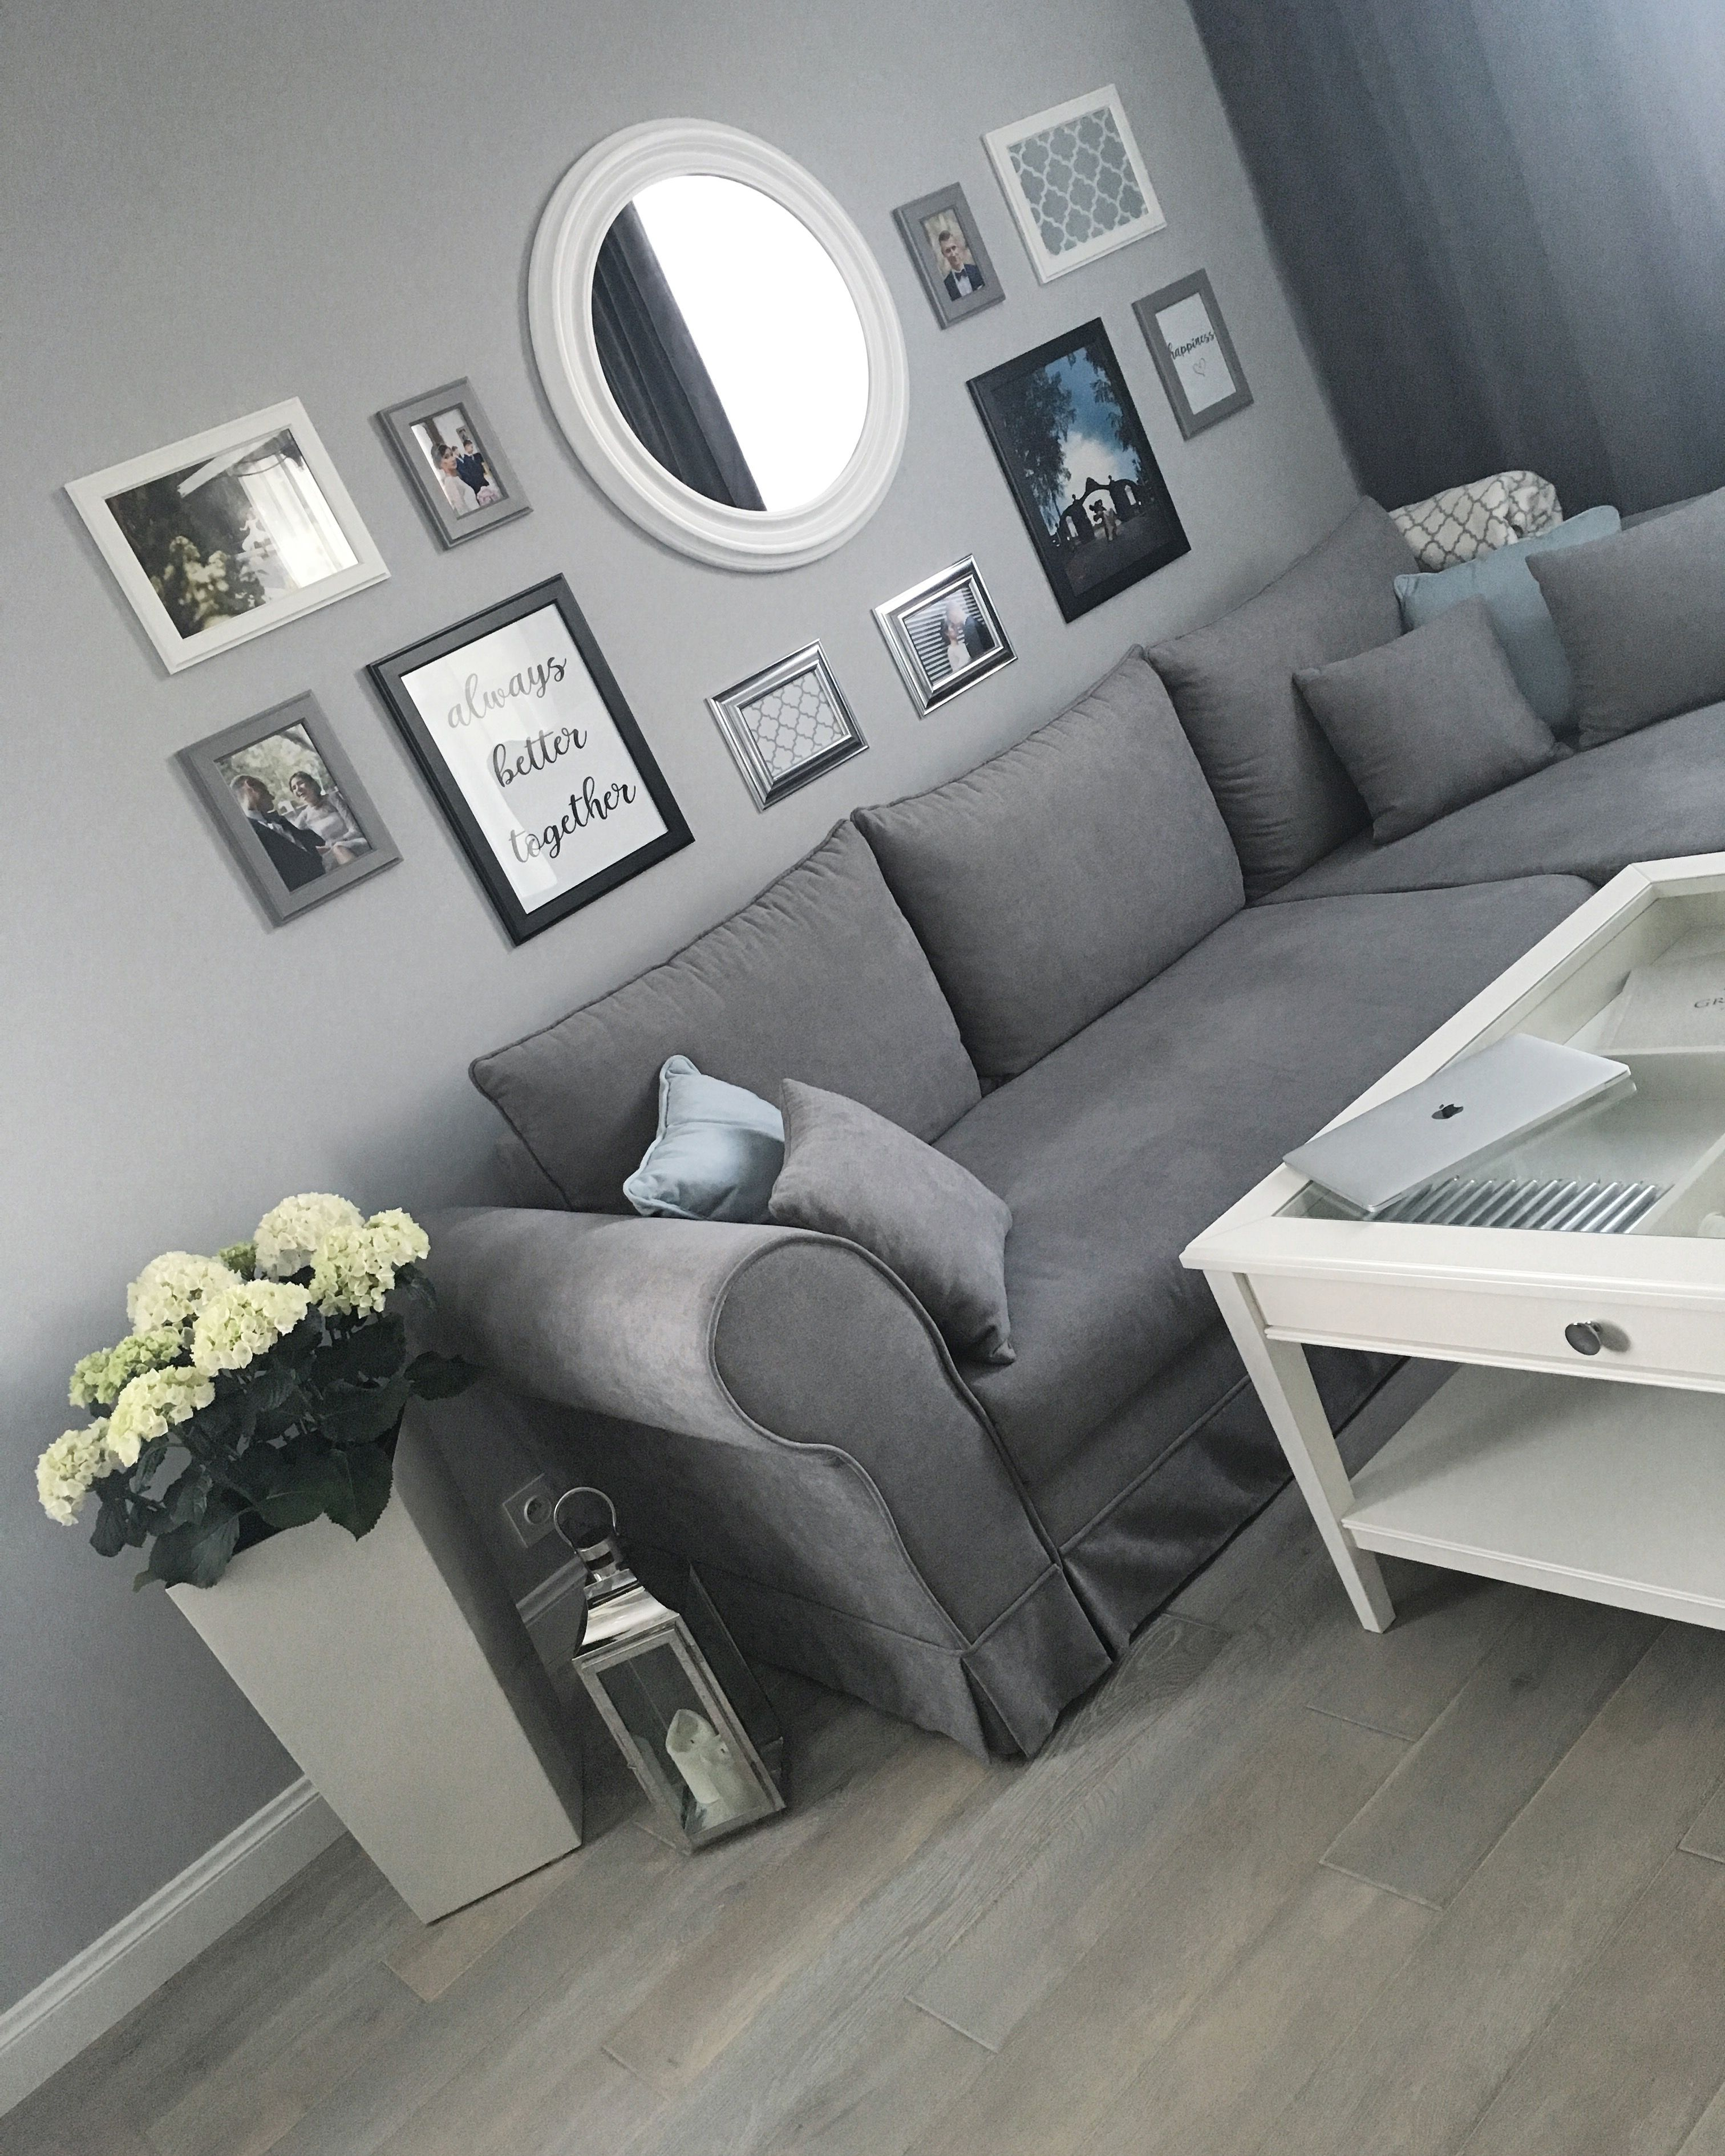 Deko Liatorp Ikea Couchtisch Home Decor In 2019 Living Room Hamptons Living Room With Ikea Liatorp Table And Wall Frames